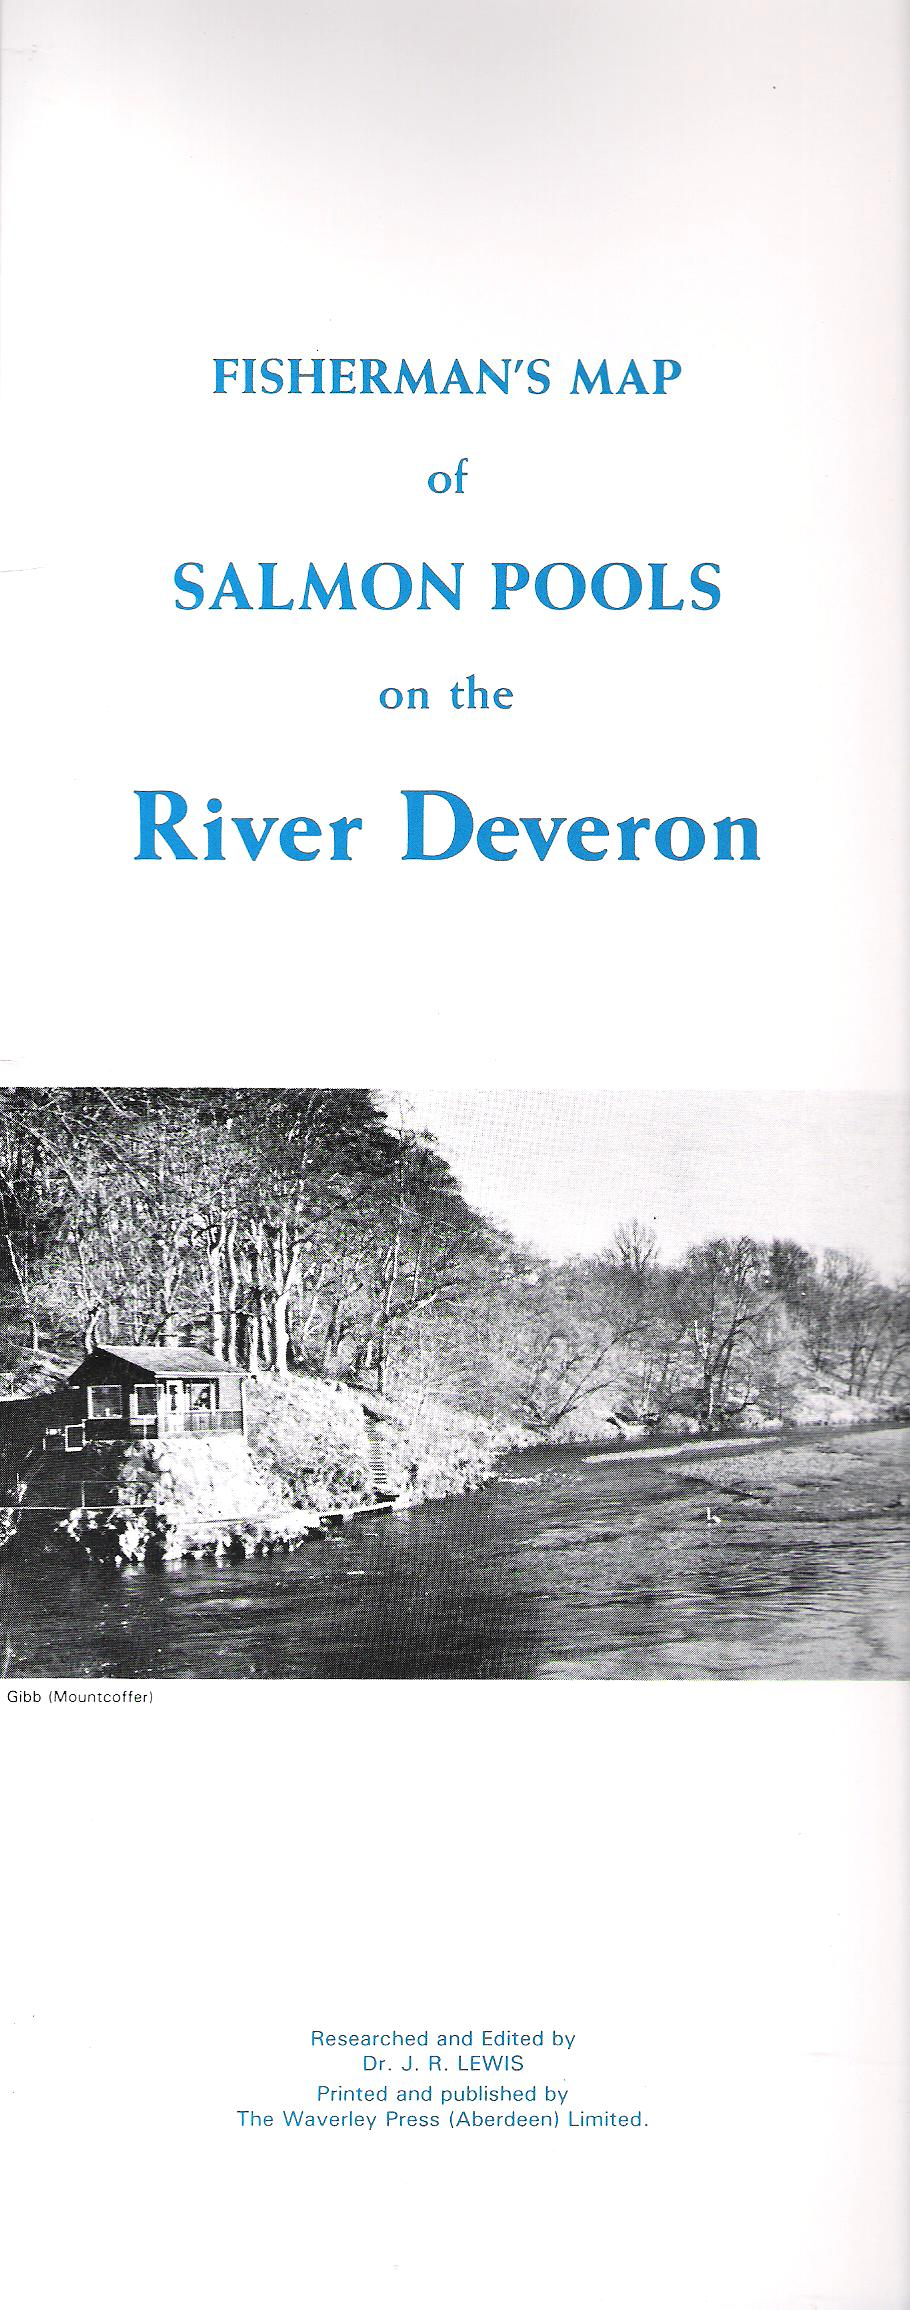 Image for Fisherman's Map of Salmon Pools on the River Deveron.